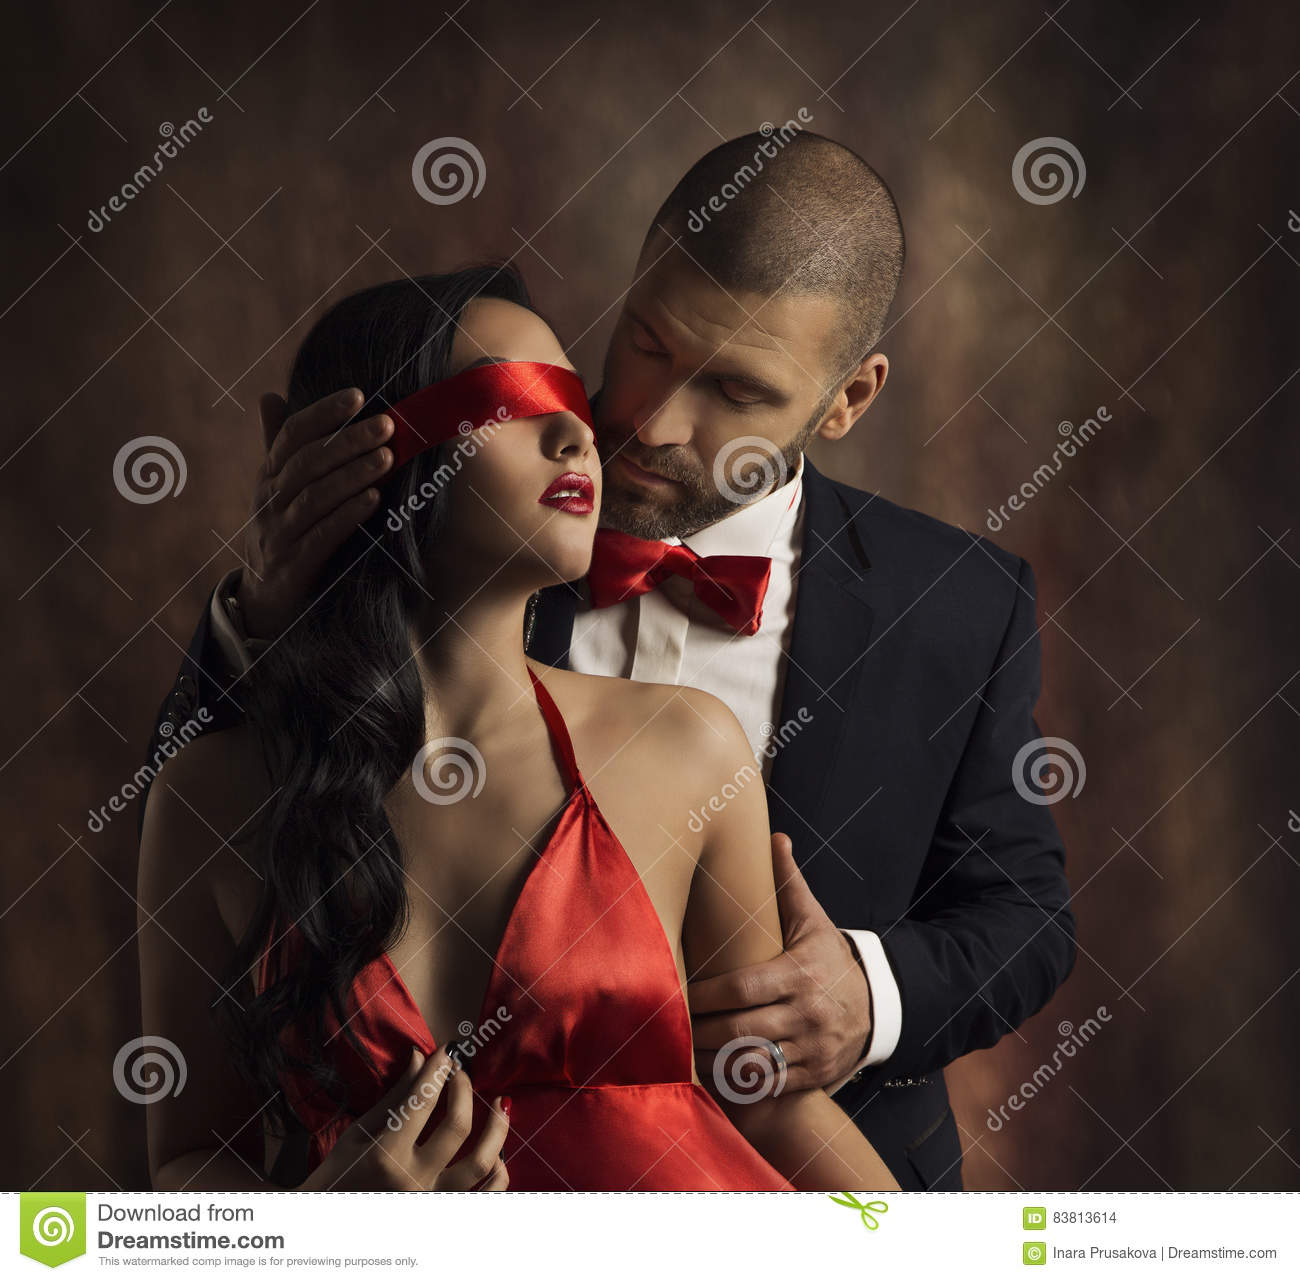 Blindfold Couple Stock Images Download 91 Royalty Free Photos